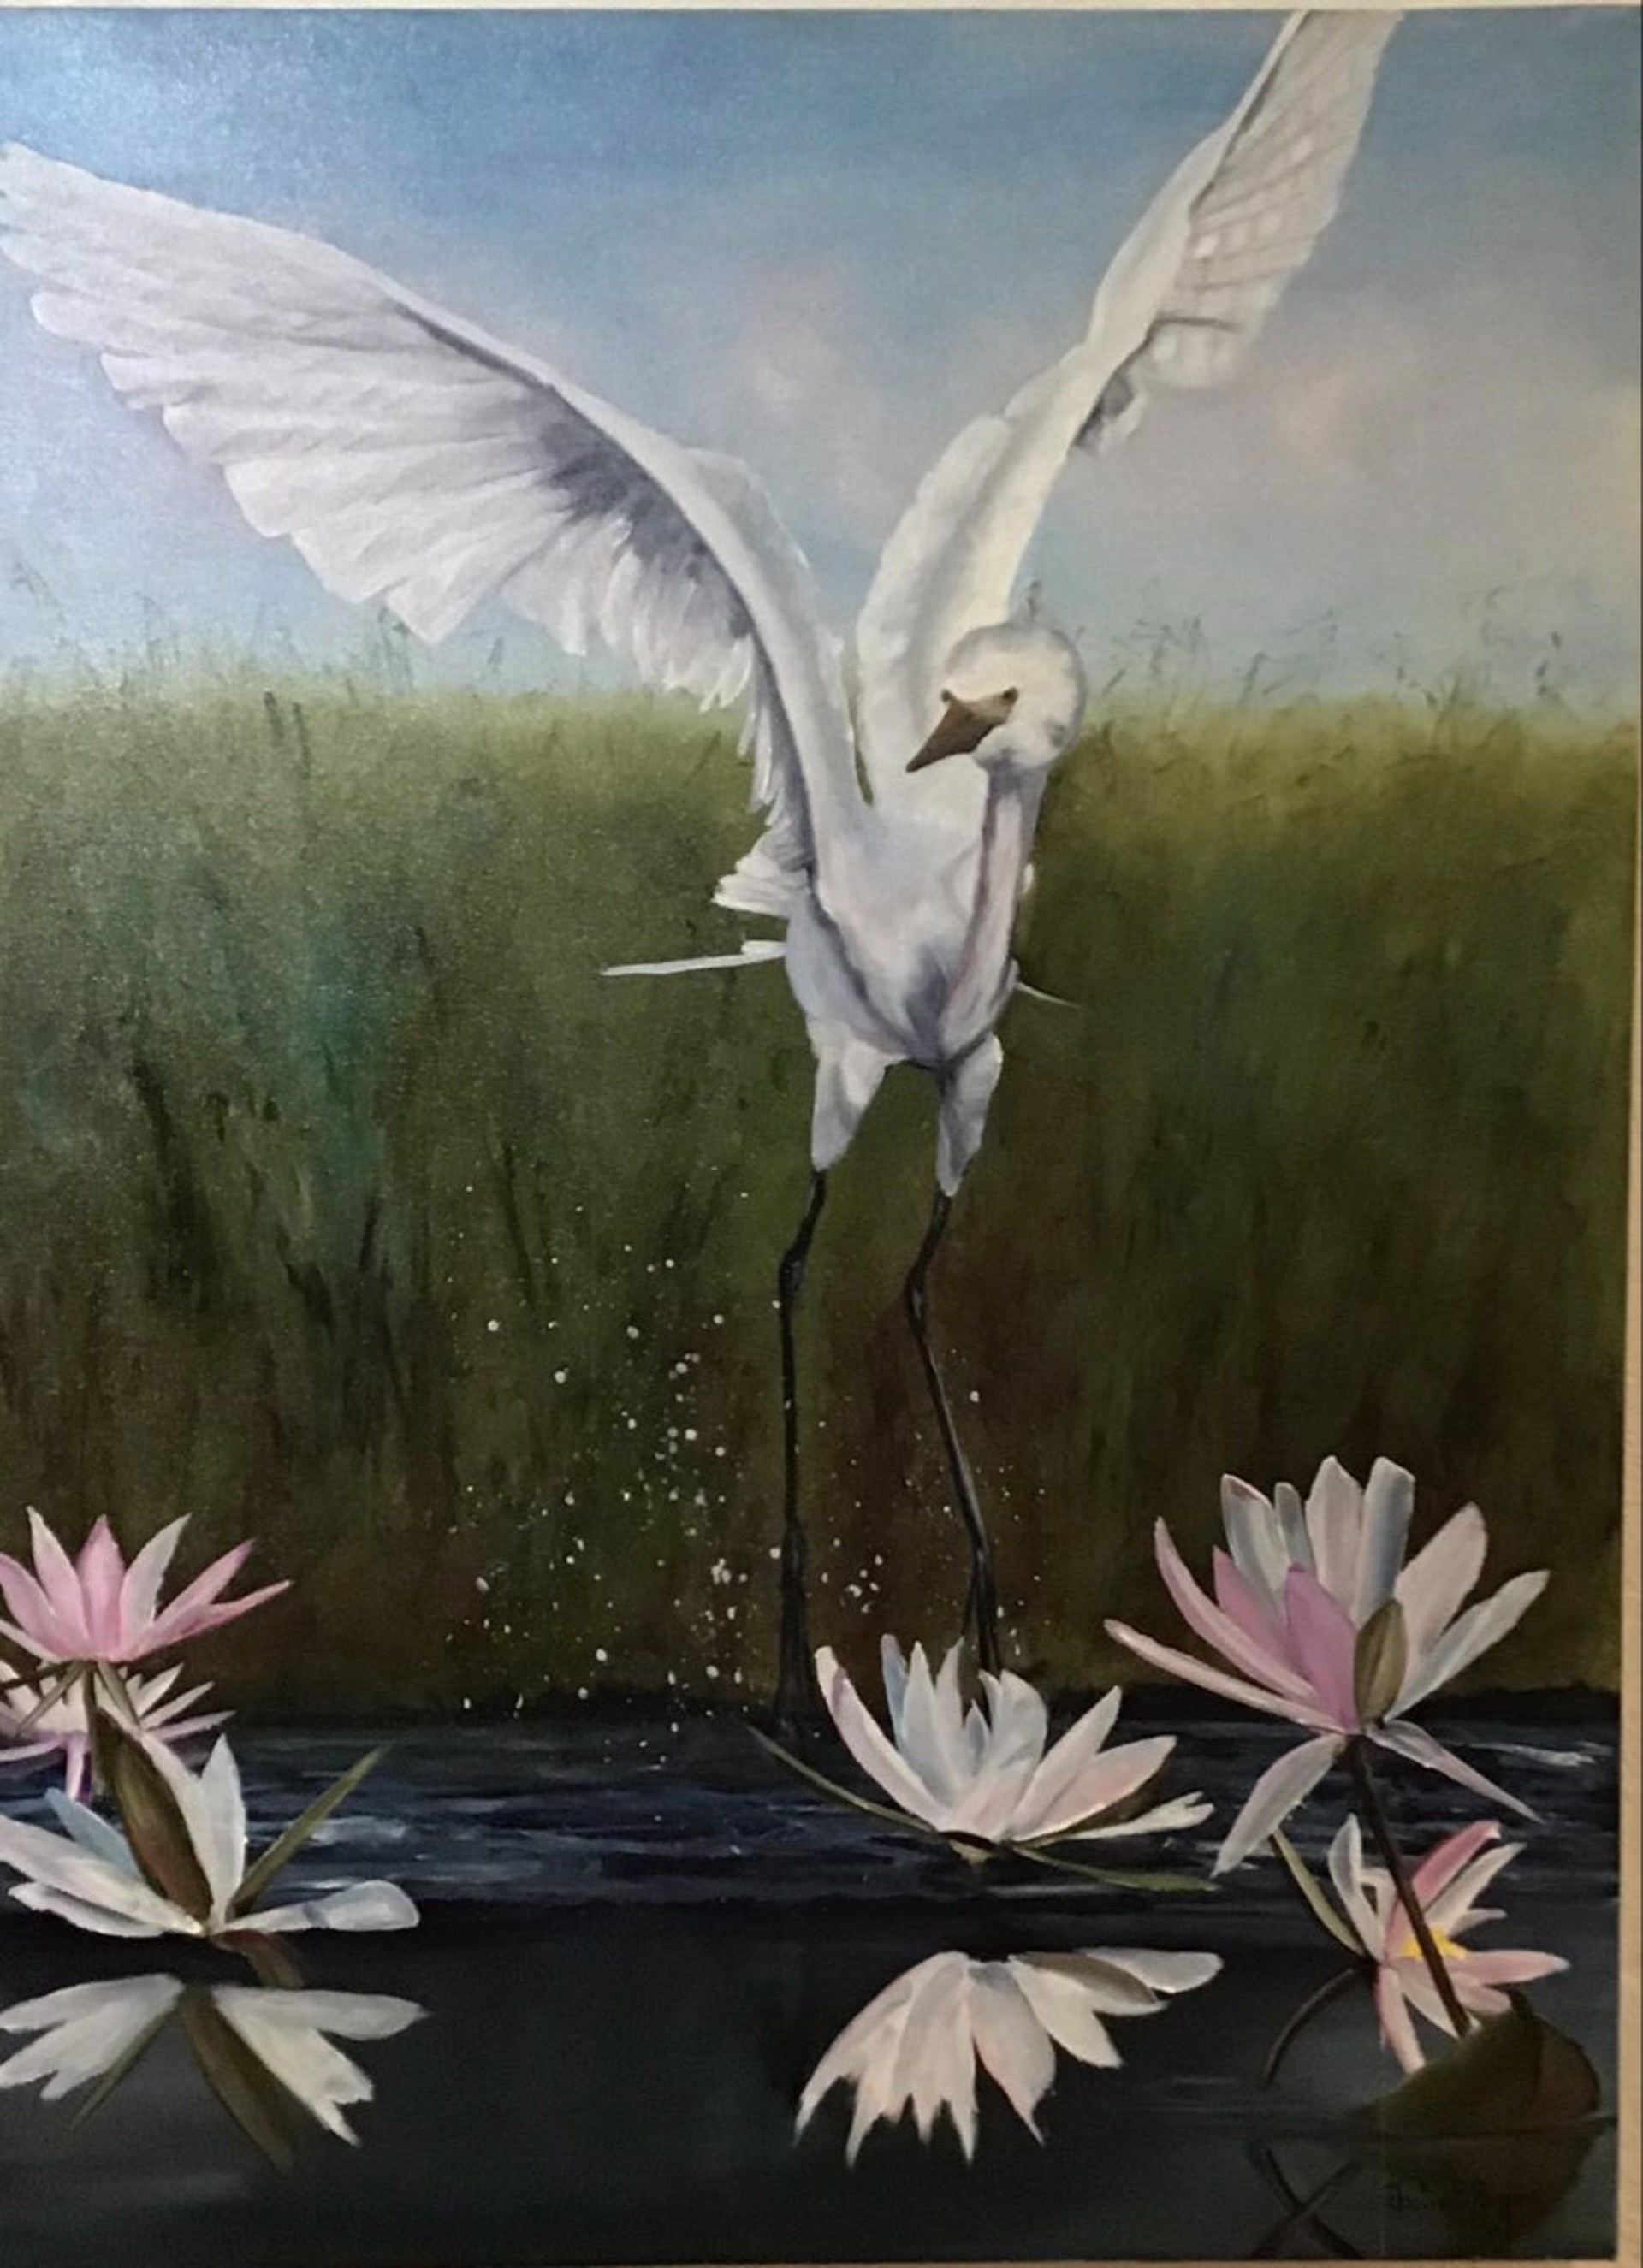 Among the Lilies by Julie Rogers